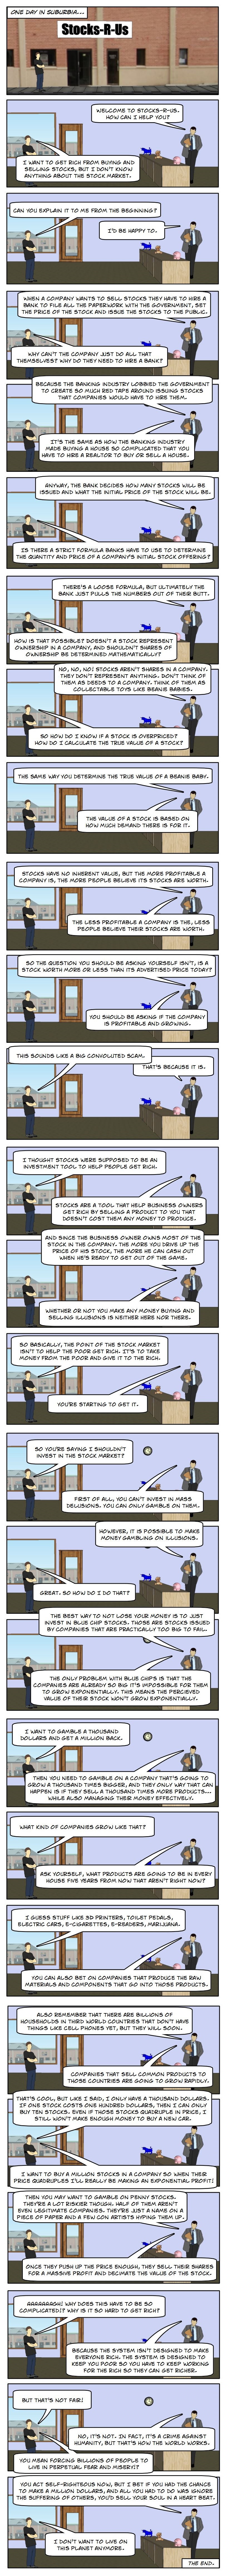 (Comic) How The Stock Market Works